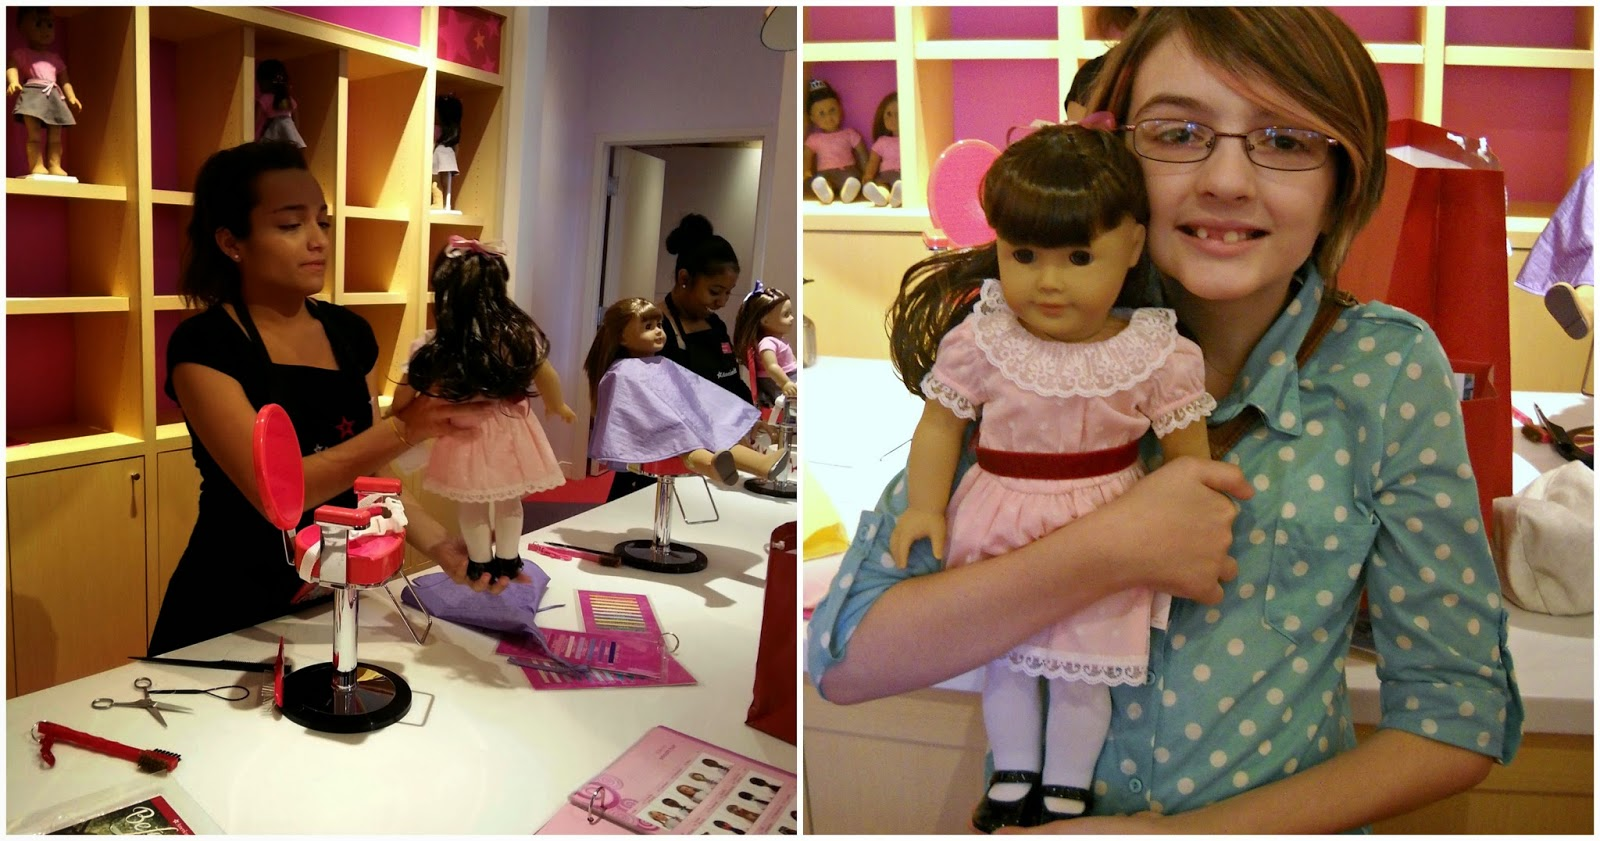 Katarina with her Samantha doll after her hair was styled at the American Girl Doll hair salon